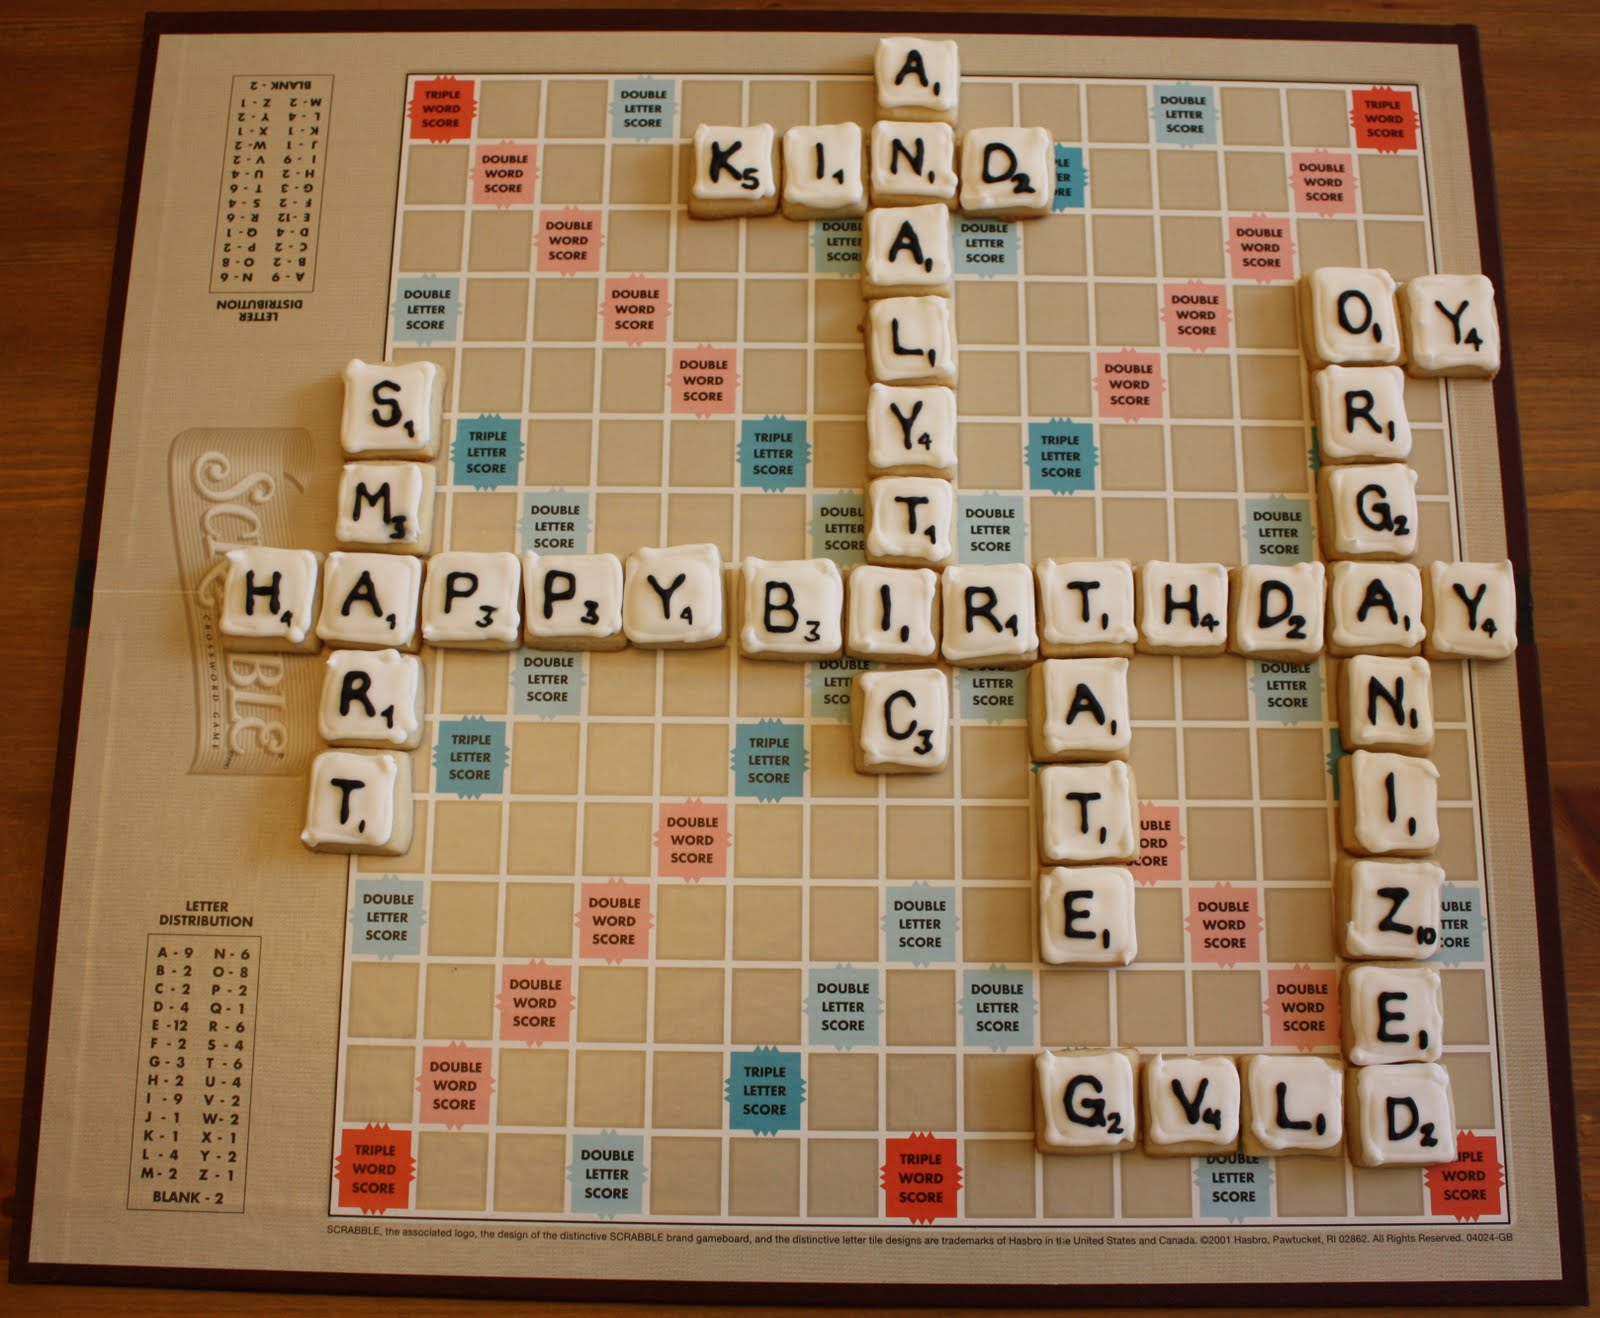 ... I wanted to try making Scrabble tiles as part of my dad's birthday gift.